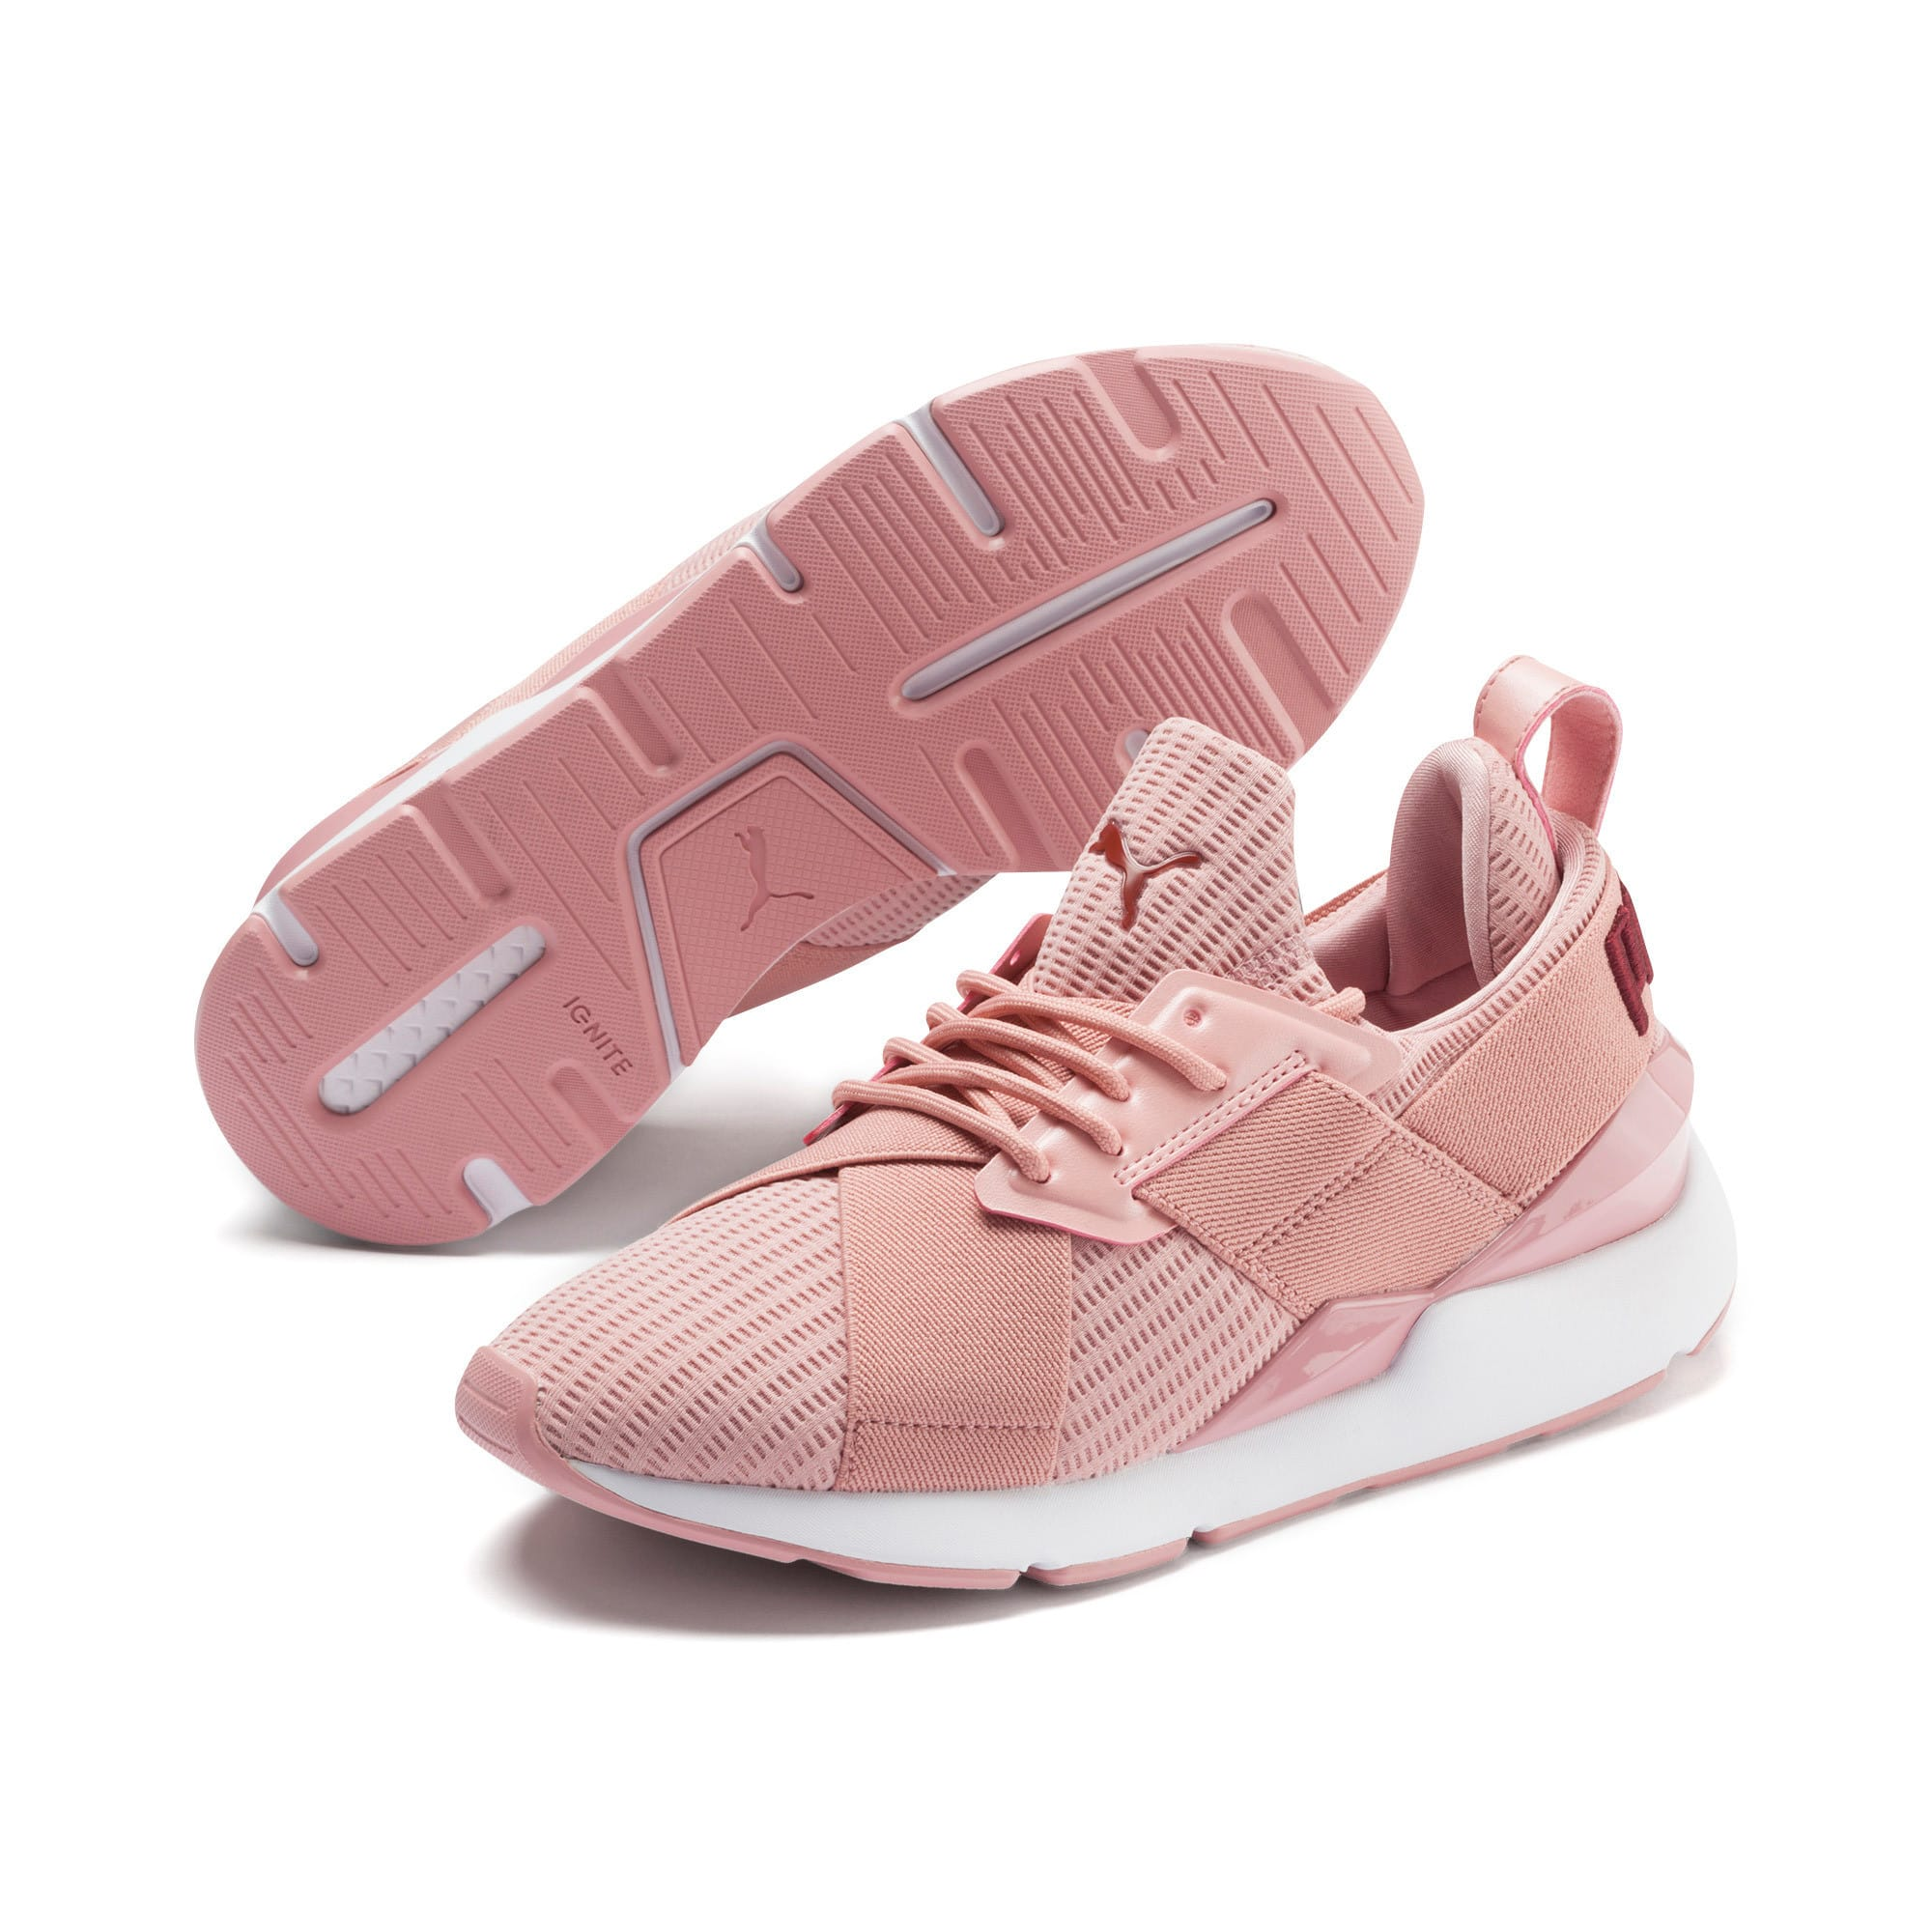 Thumbnail 2 of Muse Core+ Women's Sneakers, Bridal Rose-Fired Brick, medium